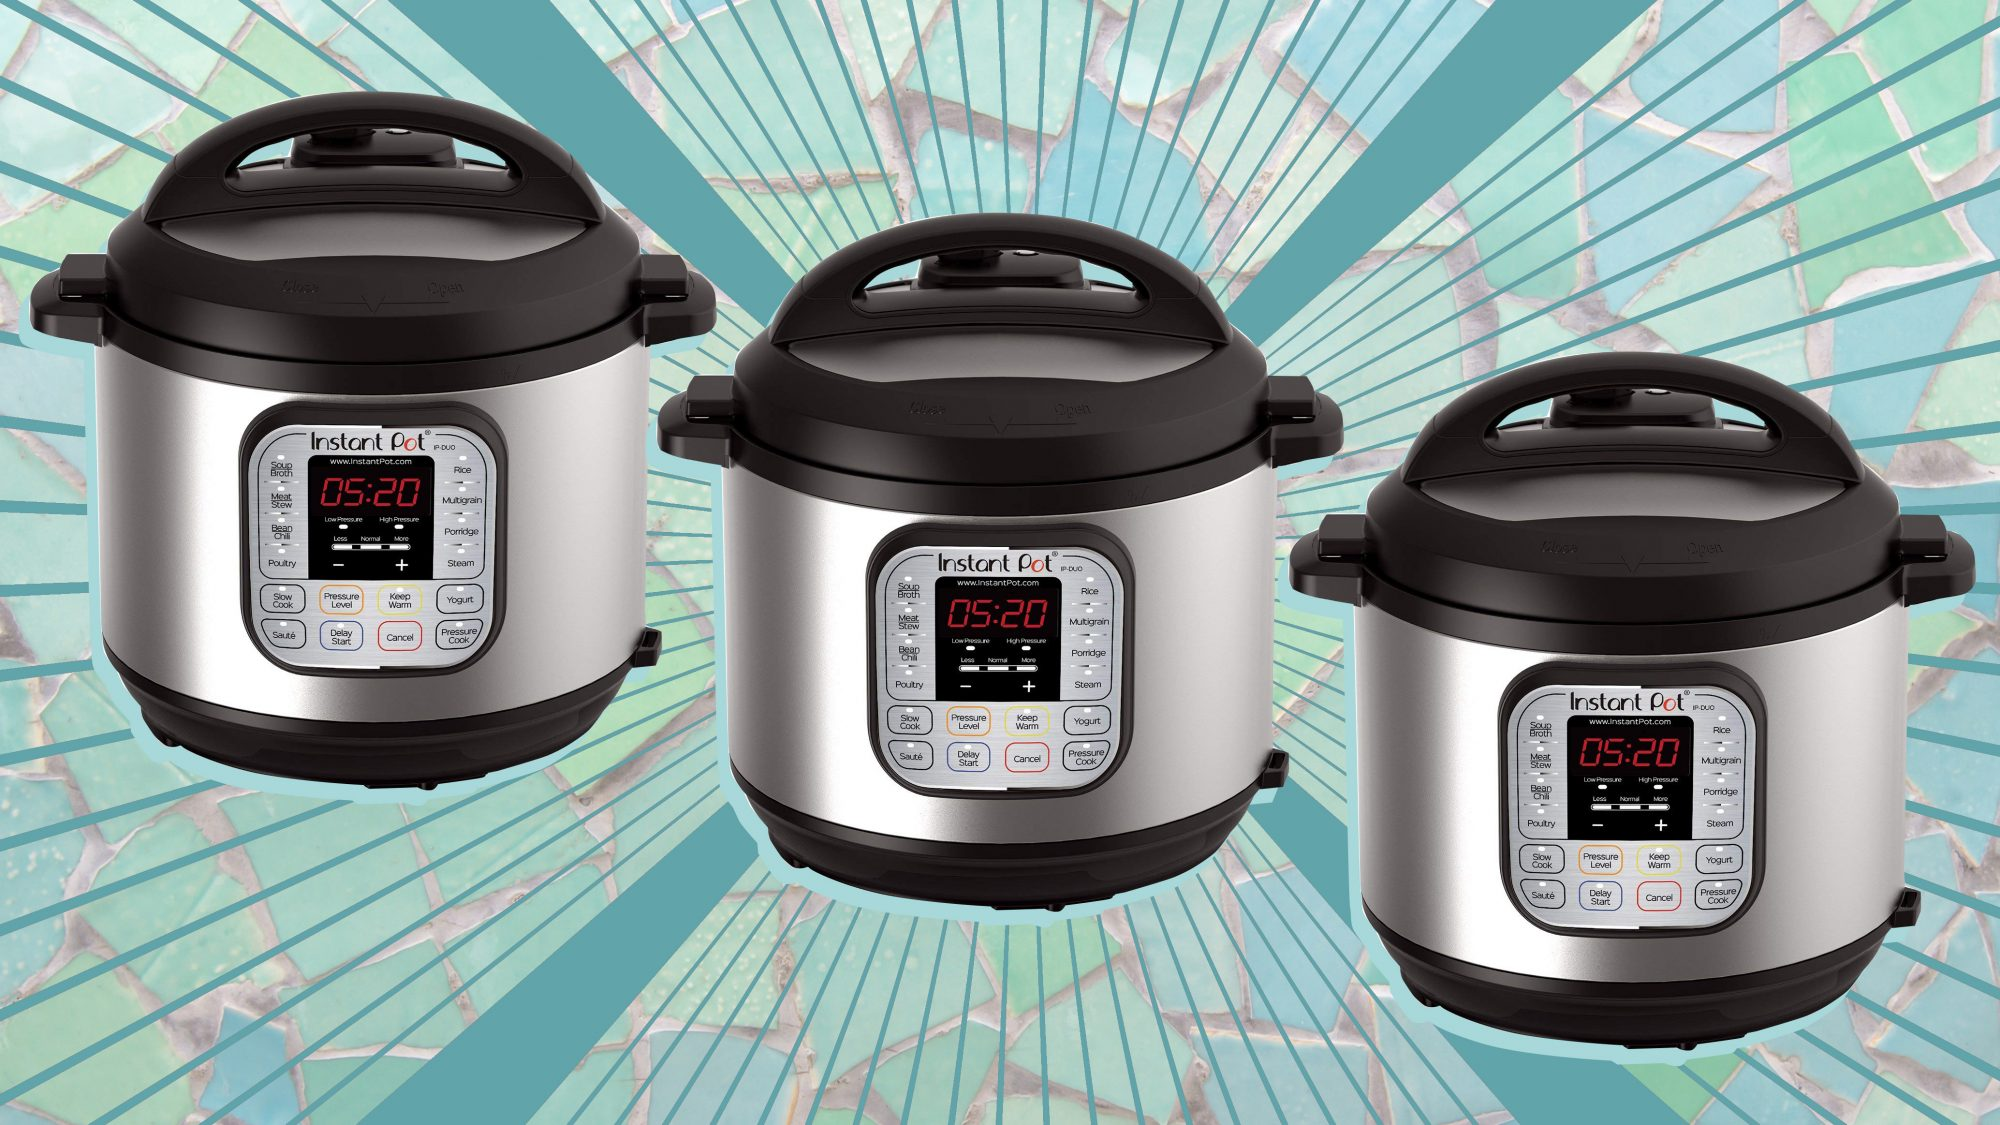 The Instant Pot Is on Major Sale This Black Friday—Here's Where to Buy It